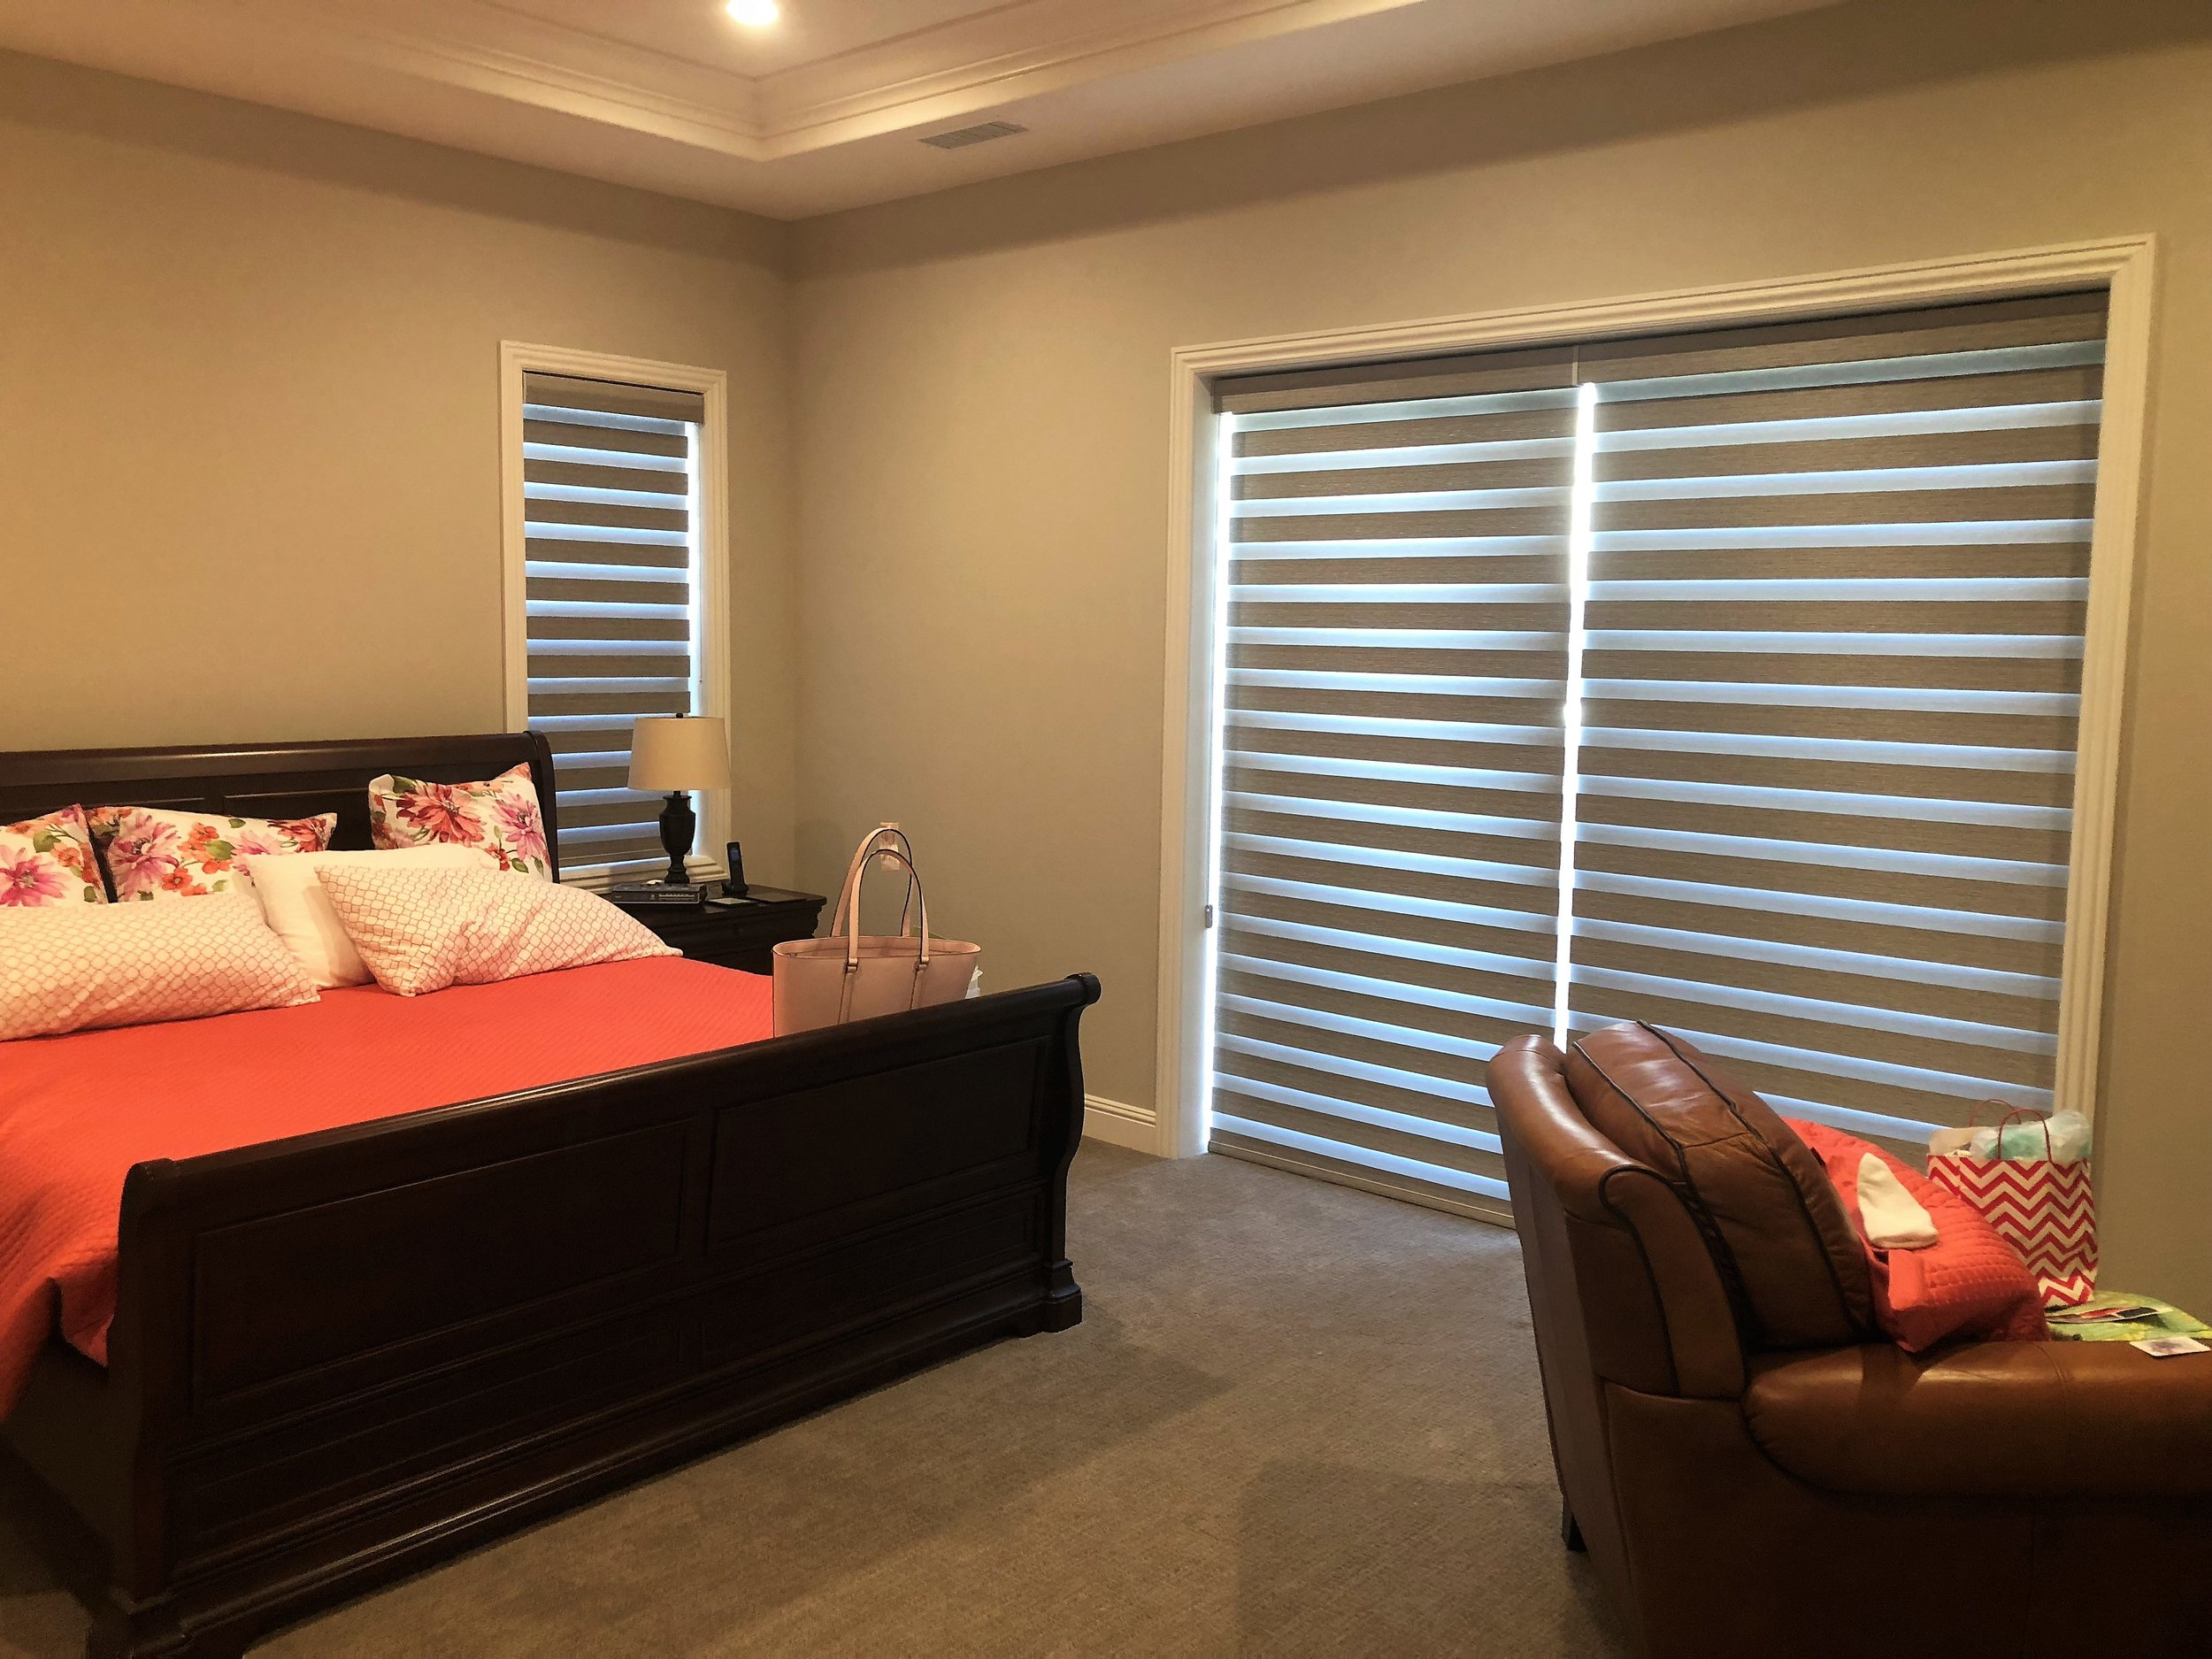 Gallery of Custom Blinds, Shutters and Shades in Carlsbad, California (CA) like Cellular in Bedrooms